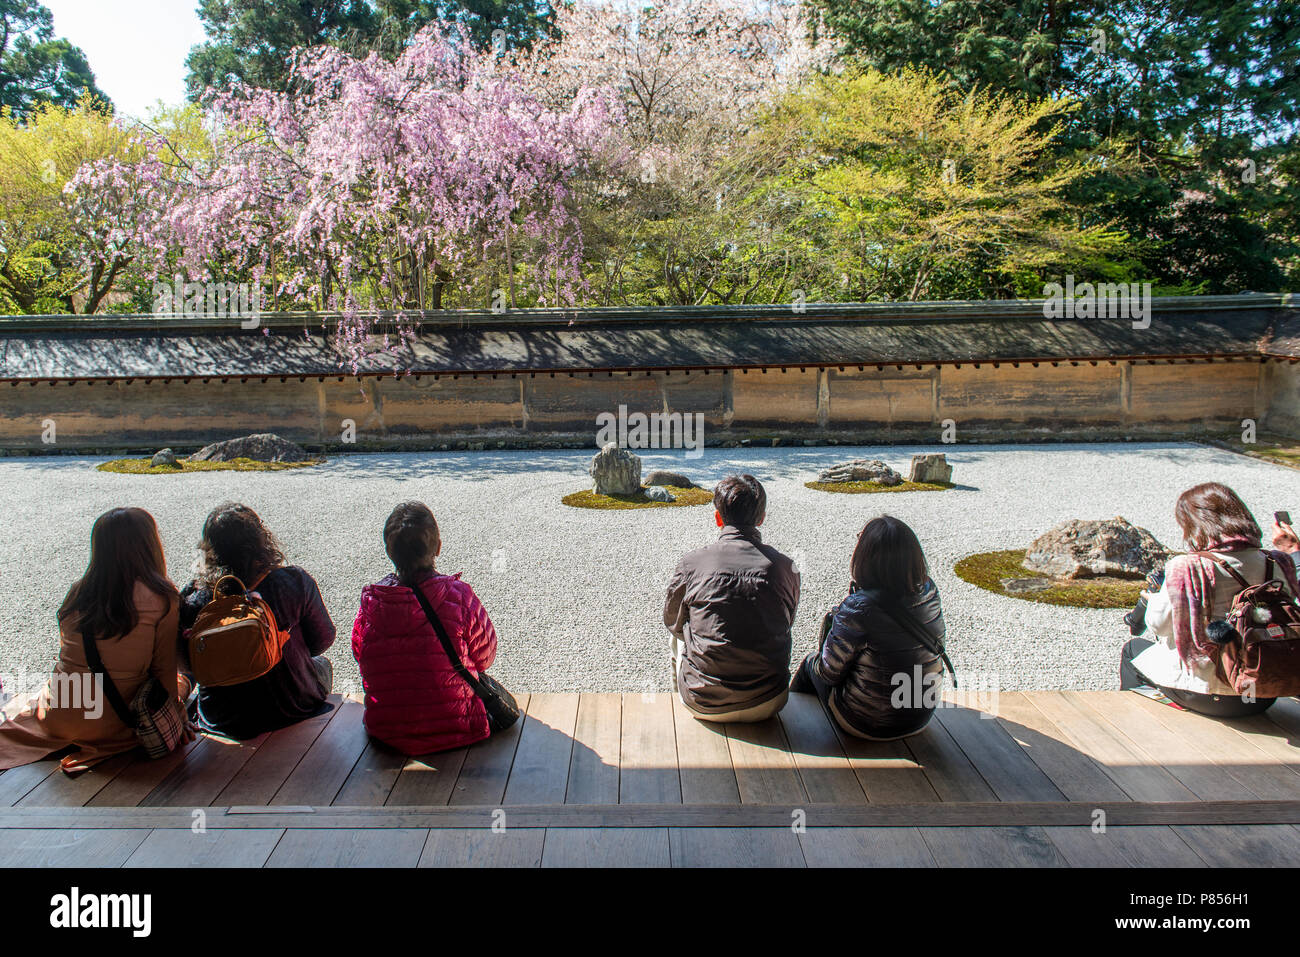 Japanese tourists enjoy tranquility at Ryoanji Temple in Kyoto, Japan. This Zen Buddhist temple is famous for its rock garden. Stock Photo